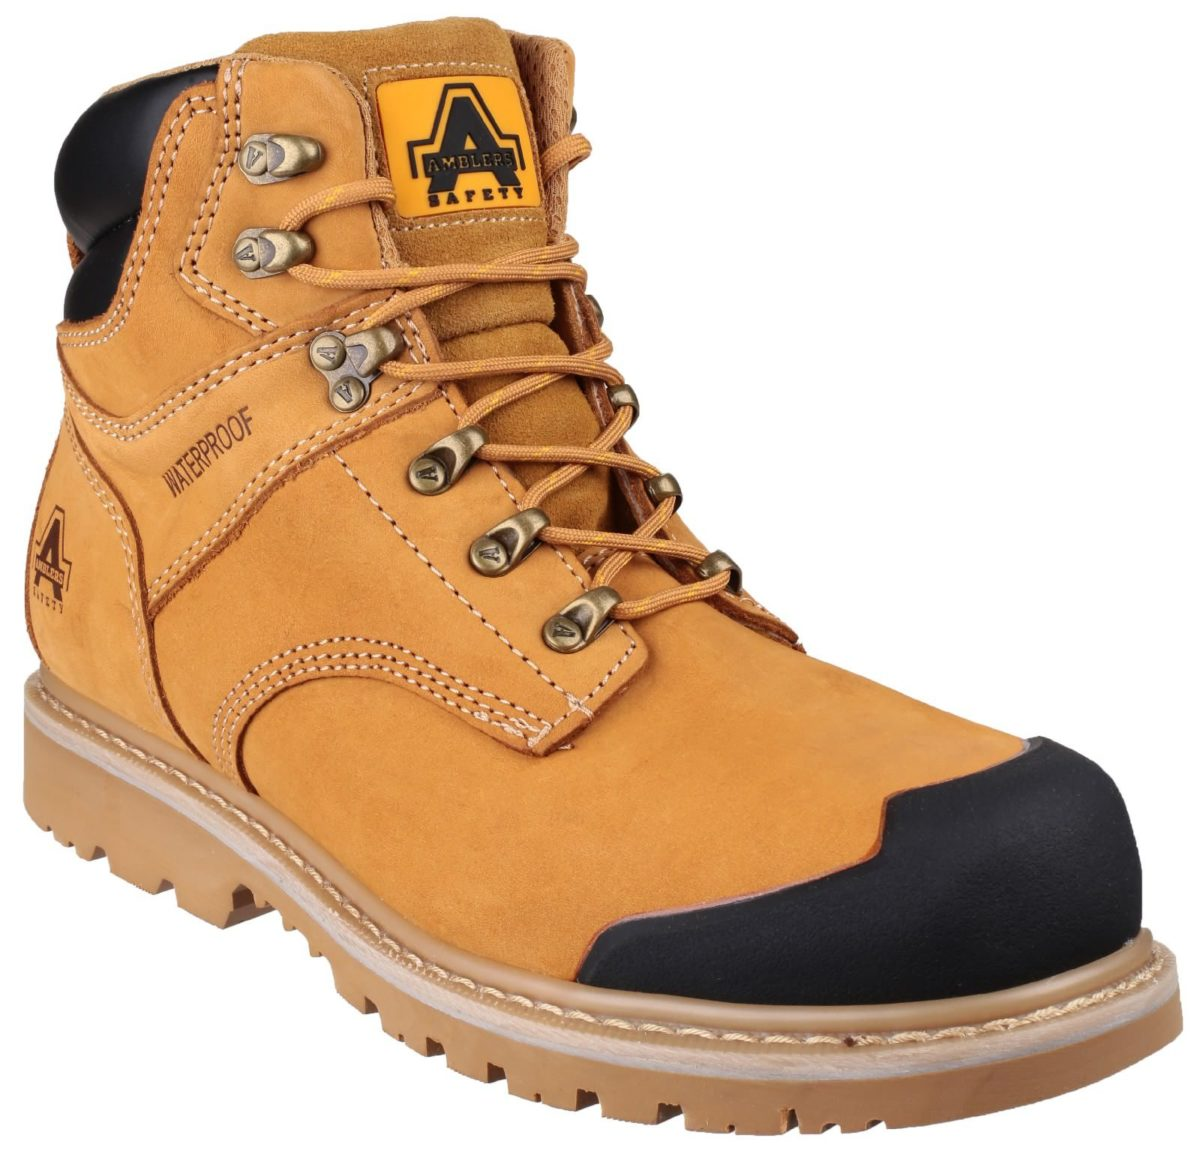 Amblers FS226 Waterproof Safety Boot